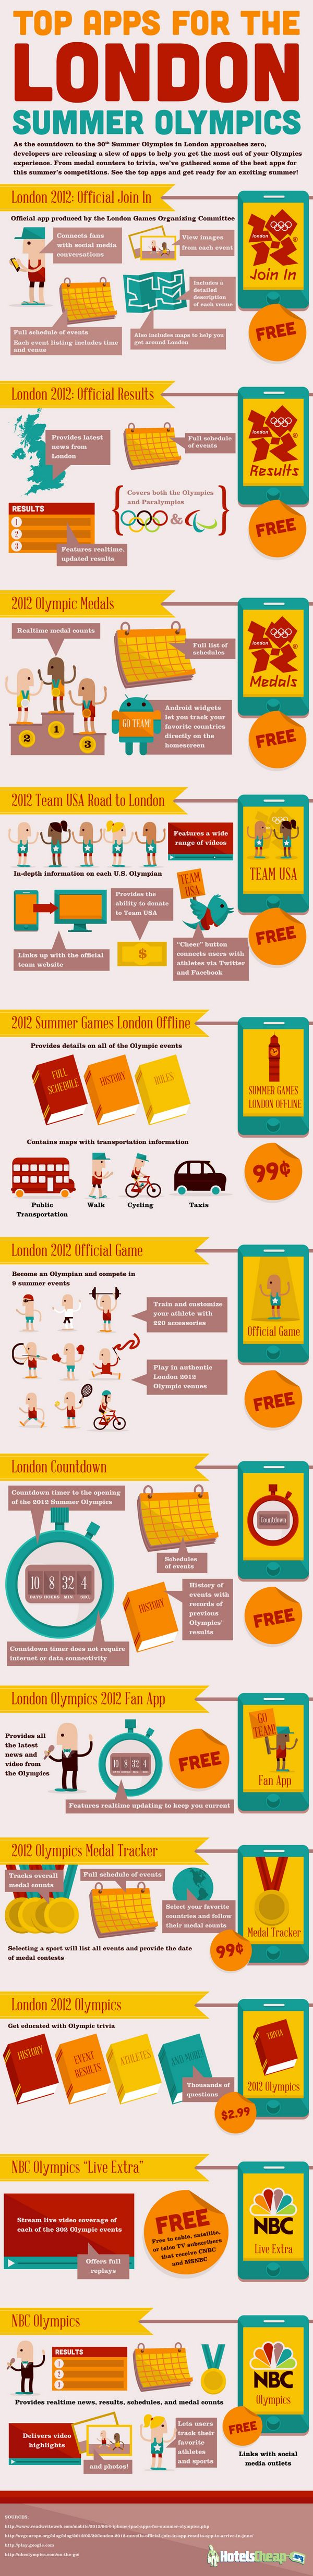 Top Apps for the London Summer Olympics | Visit our new infographic gallery at visualoop.com/